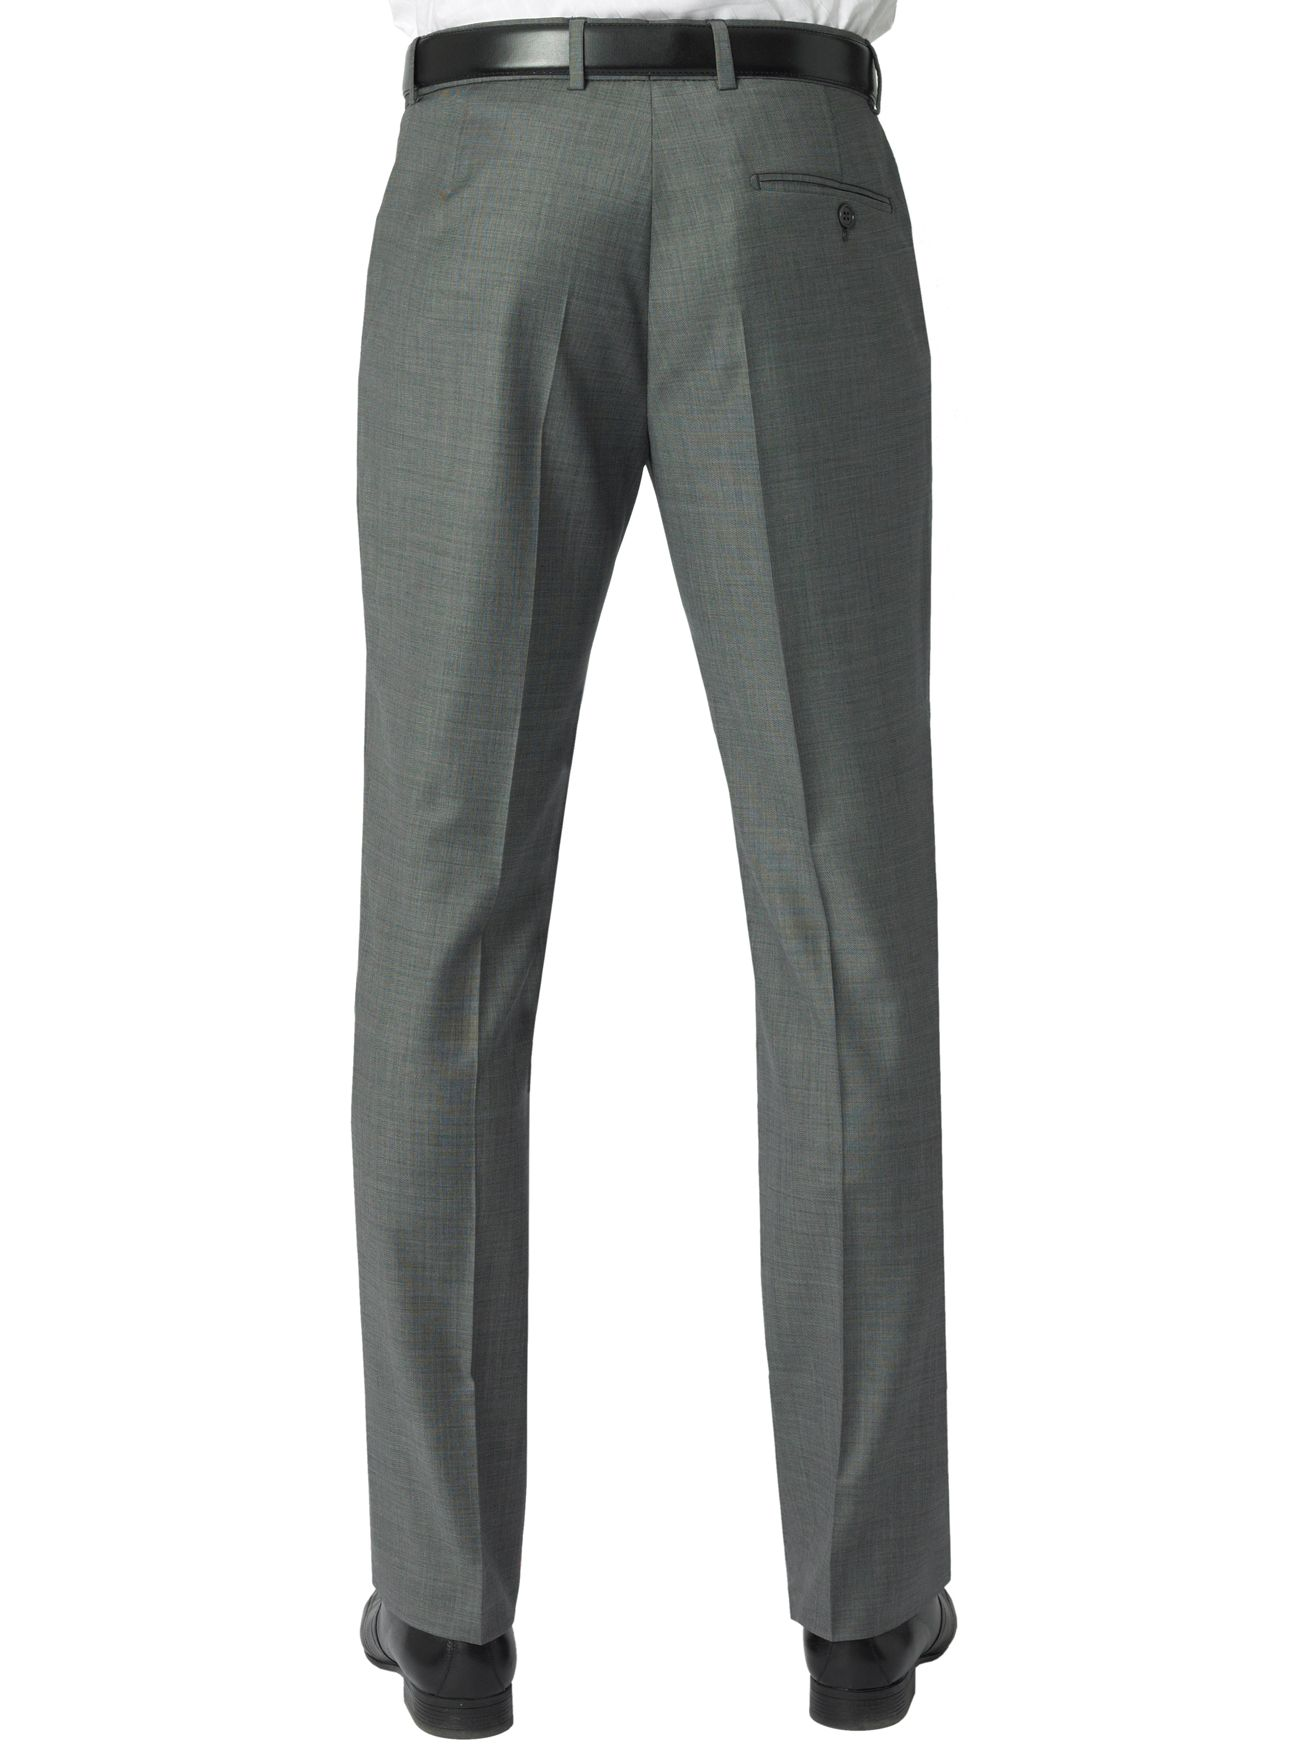 Alexandre Savile Row Plain Trouser in Grey (Grey) for Men